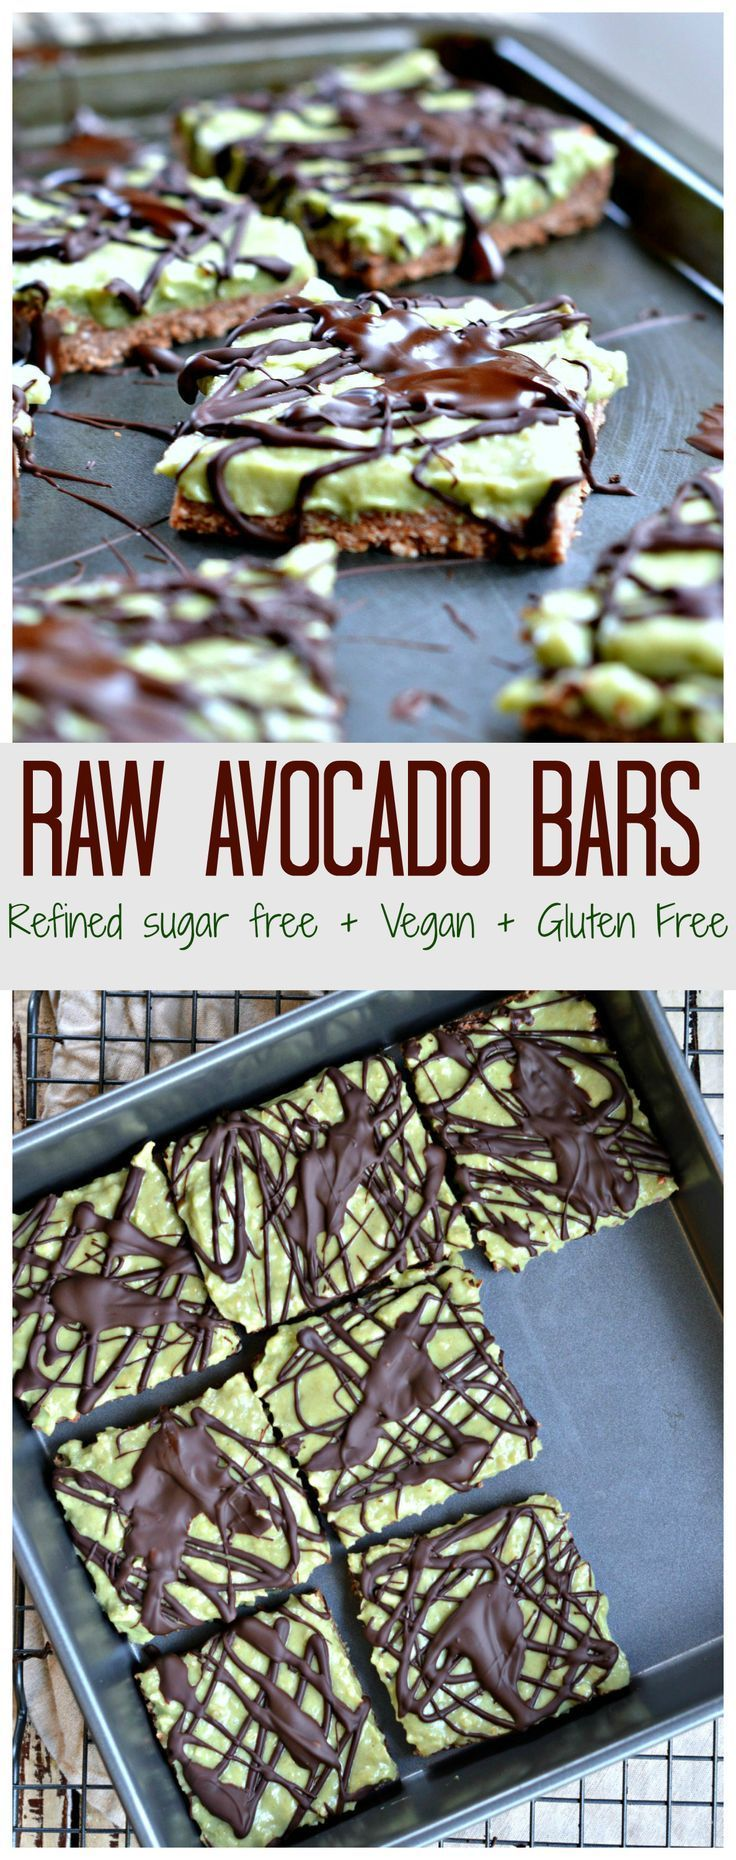 A Super heatlthy cookie bars with a lovely green colour perfect for Halloween ! Those bars are vegan, gluten free and do not contains added sugar naturally sweetened with banana only ! #raw #vegan #avocado #banana #bars #cookies #halloween